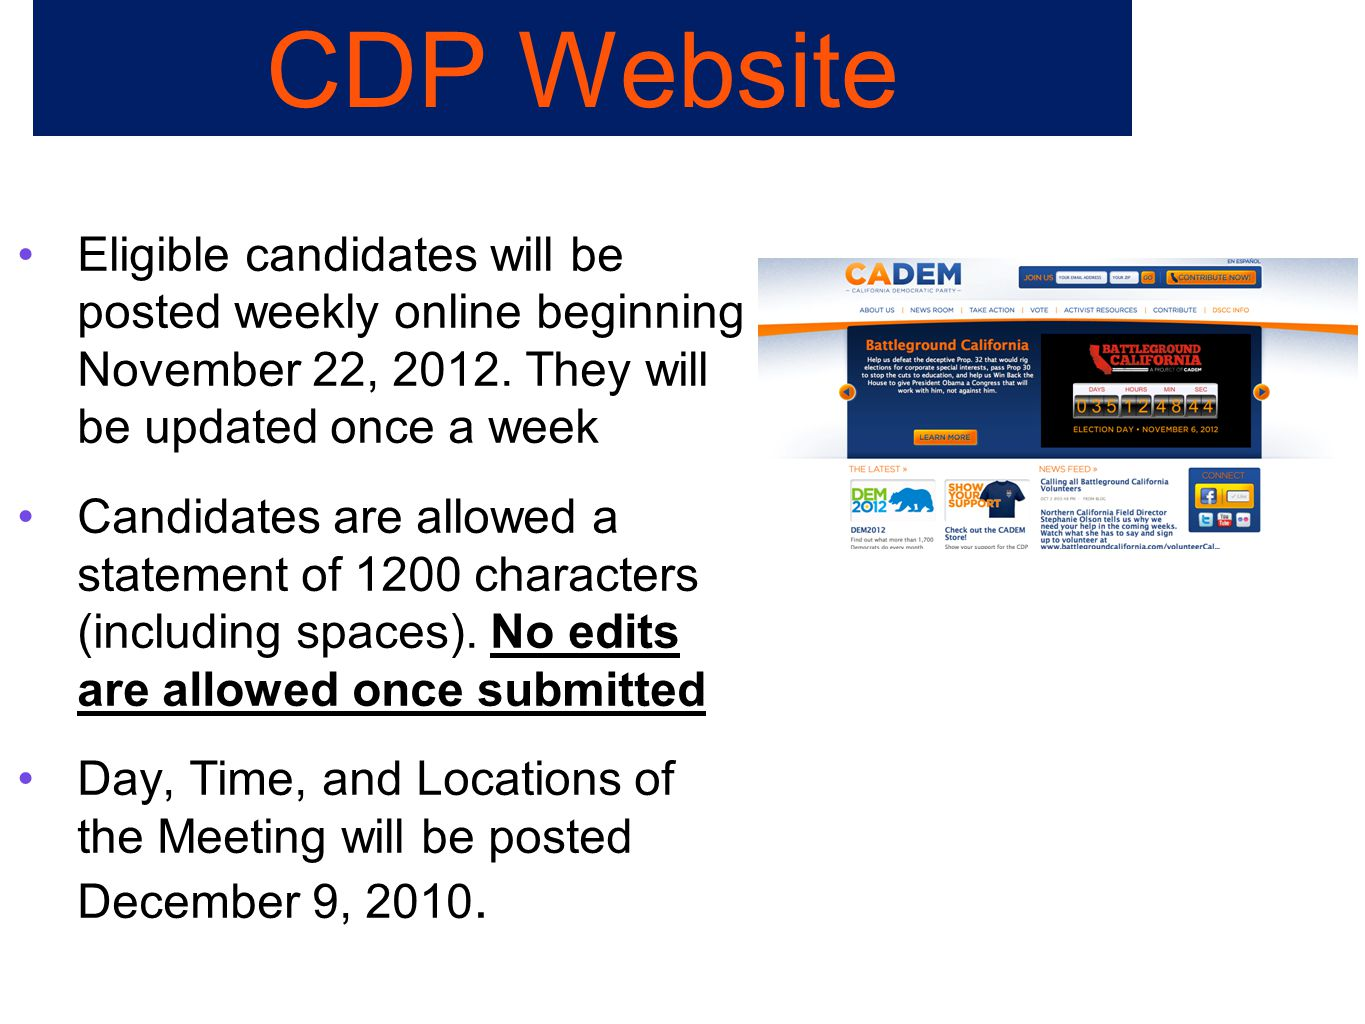 Eligible candidates will be posted weekly online beginning November 22, 2012. They will be updated once a week Candidates are allowed a statement of 1